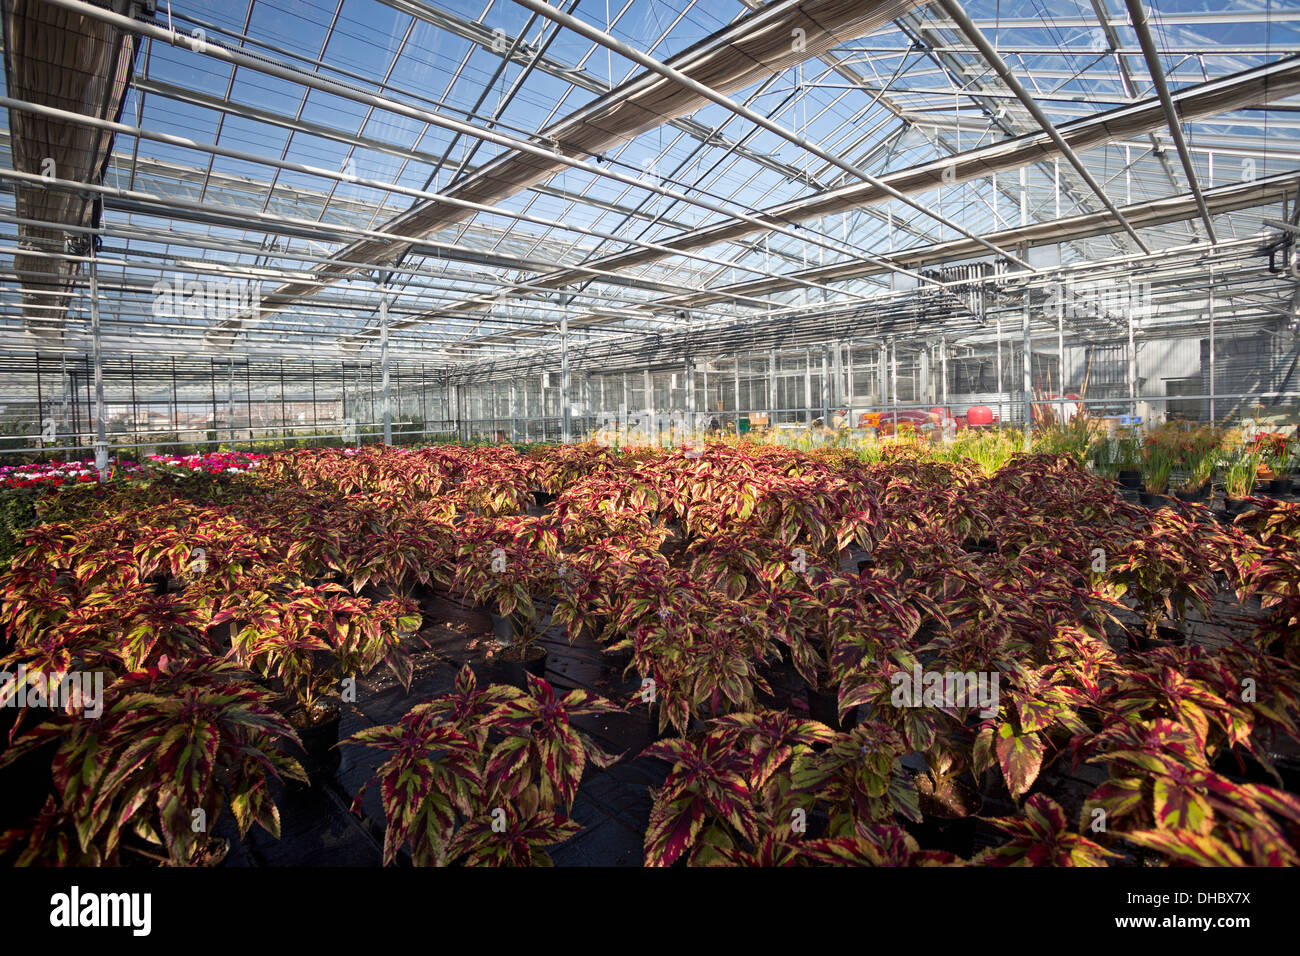 A Combat Coleus plant cultivation (Solenostemon scutellarioides), in the Vichy horticultural production Centre. Stock Photo